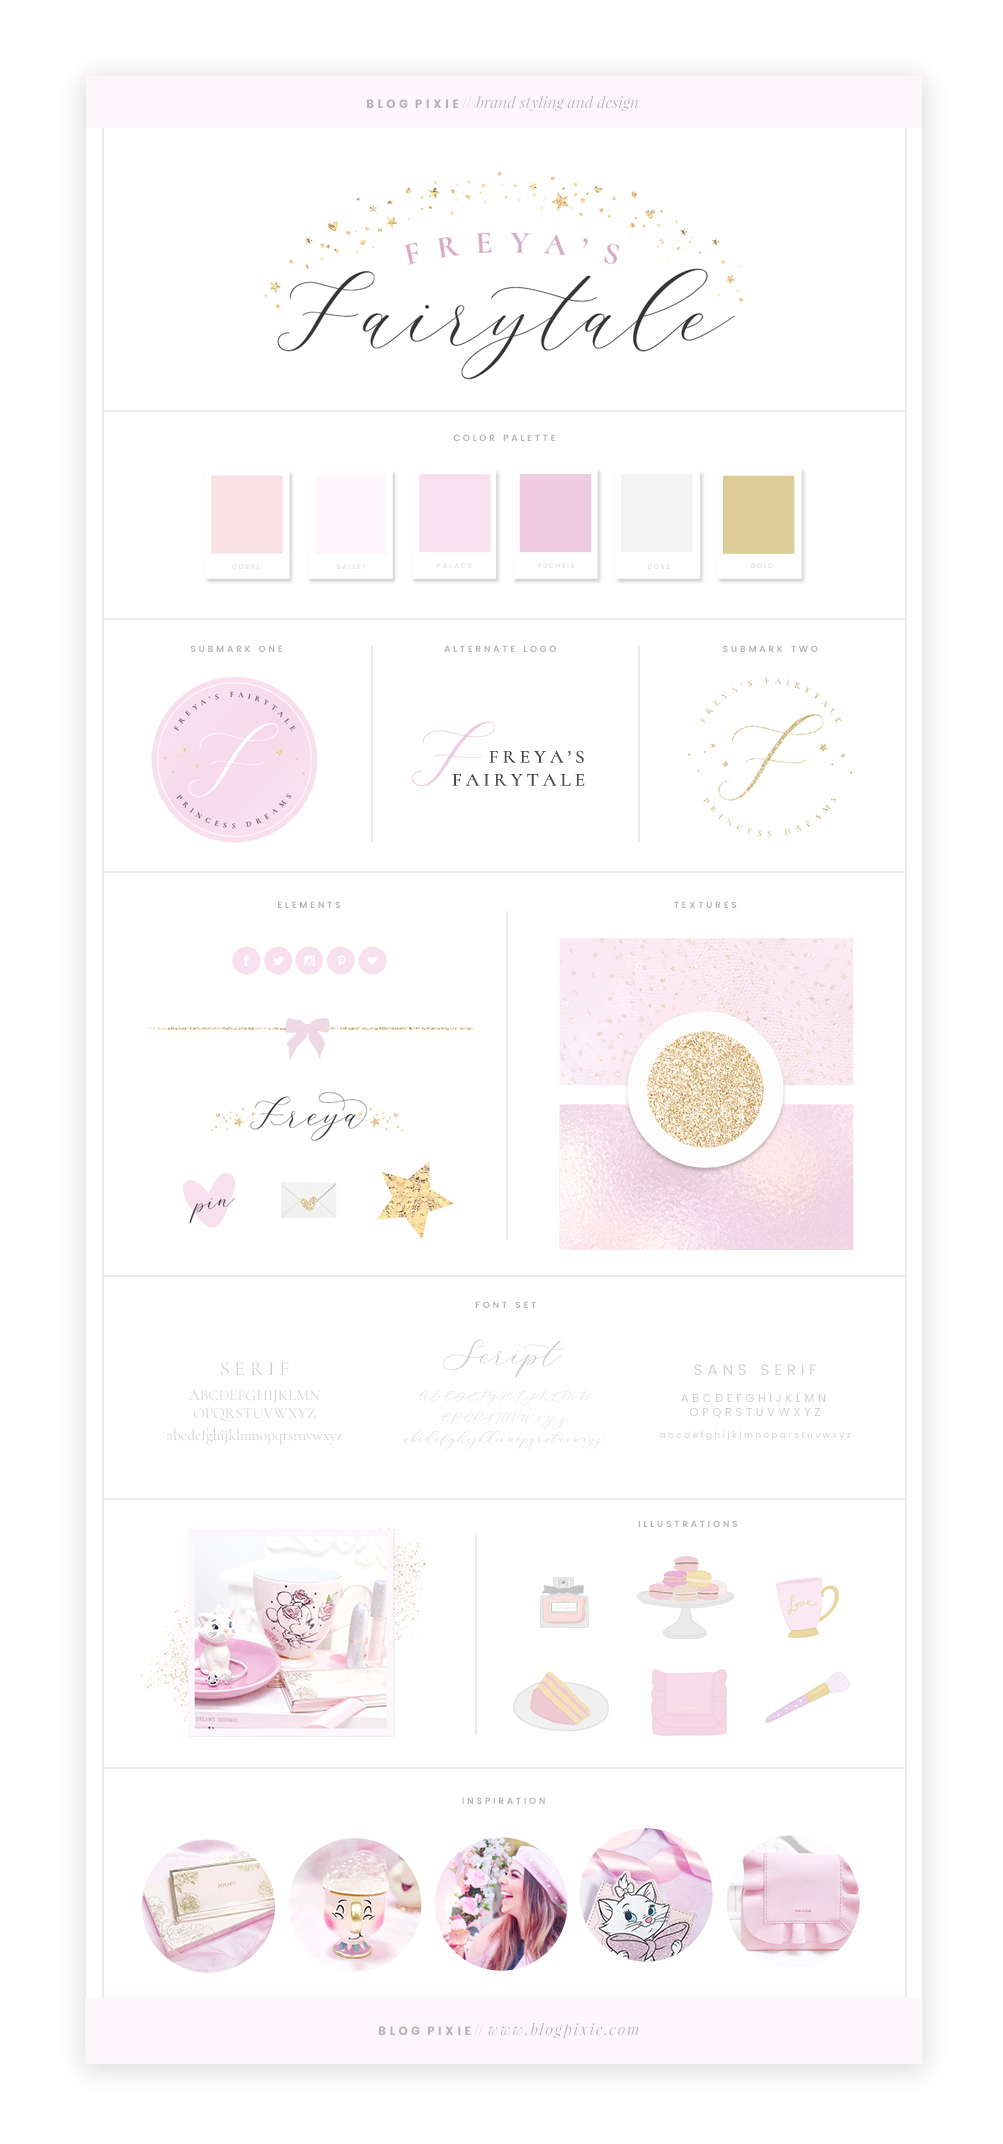 Freya's Fairytale brand and blog design